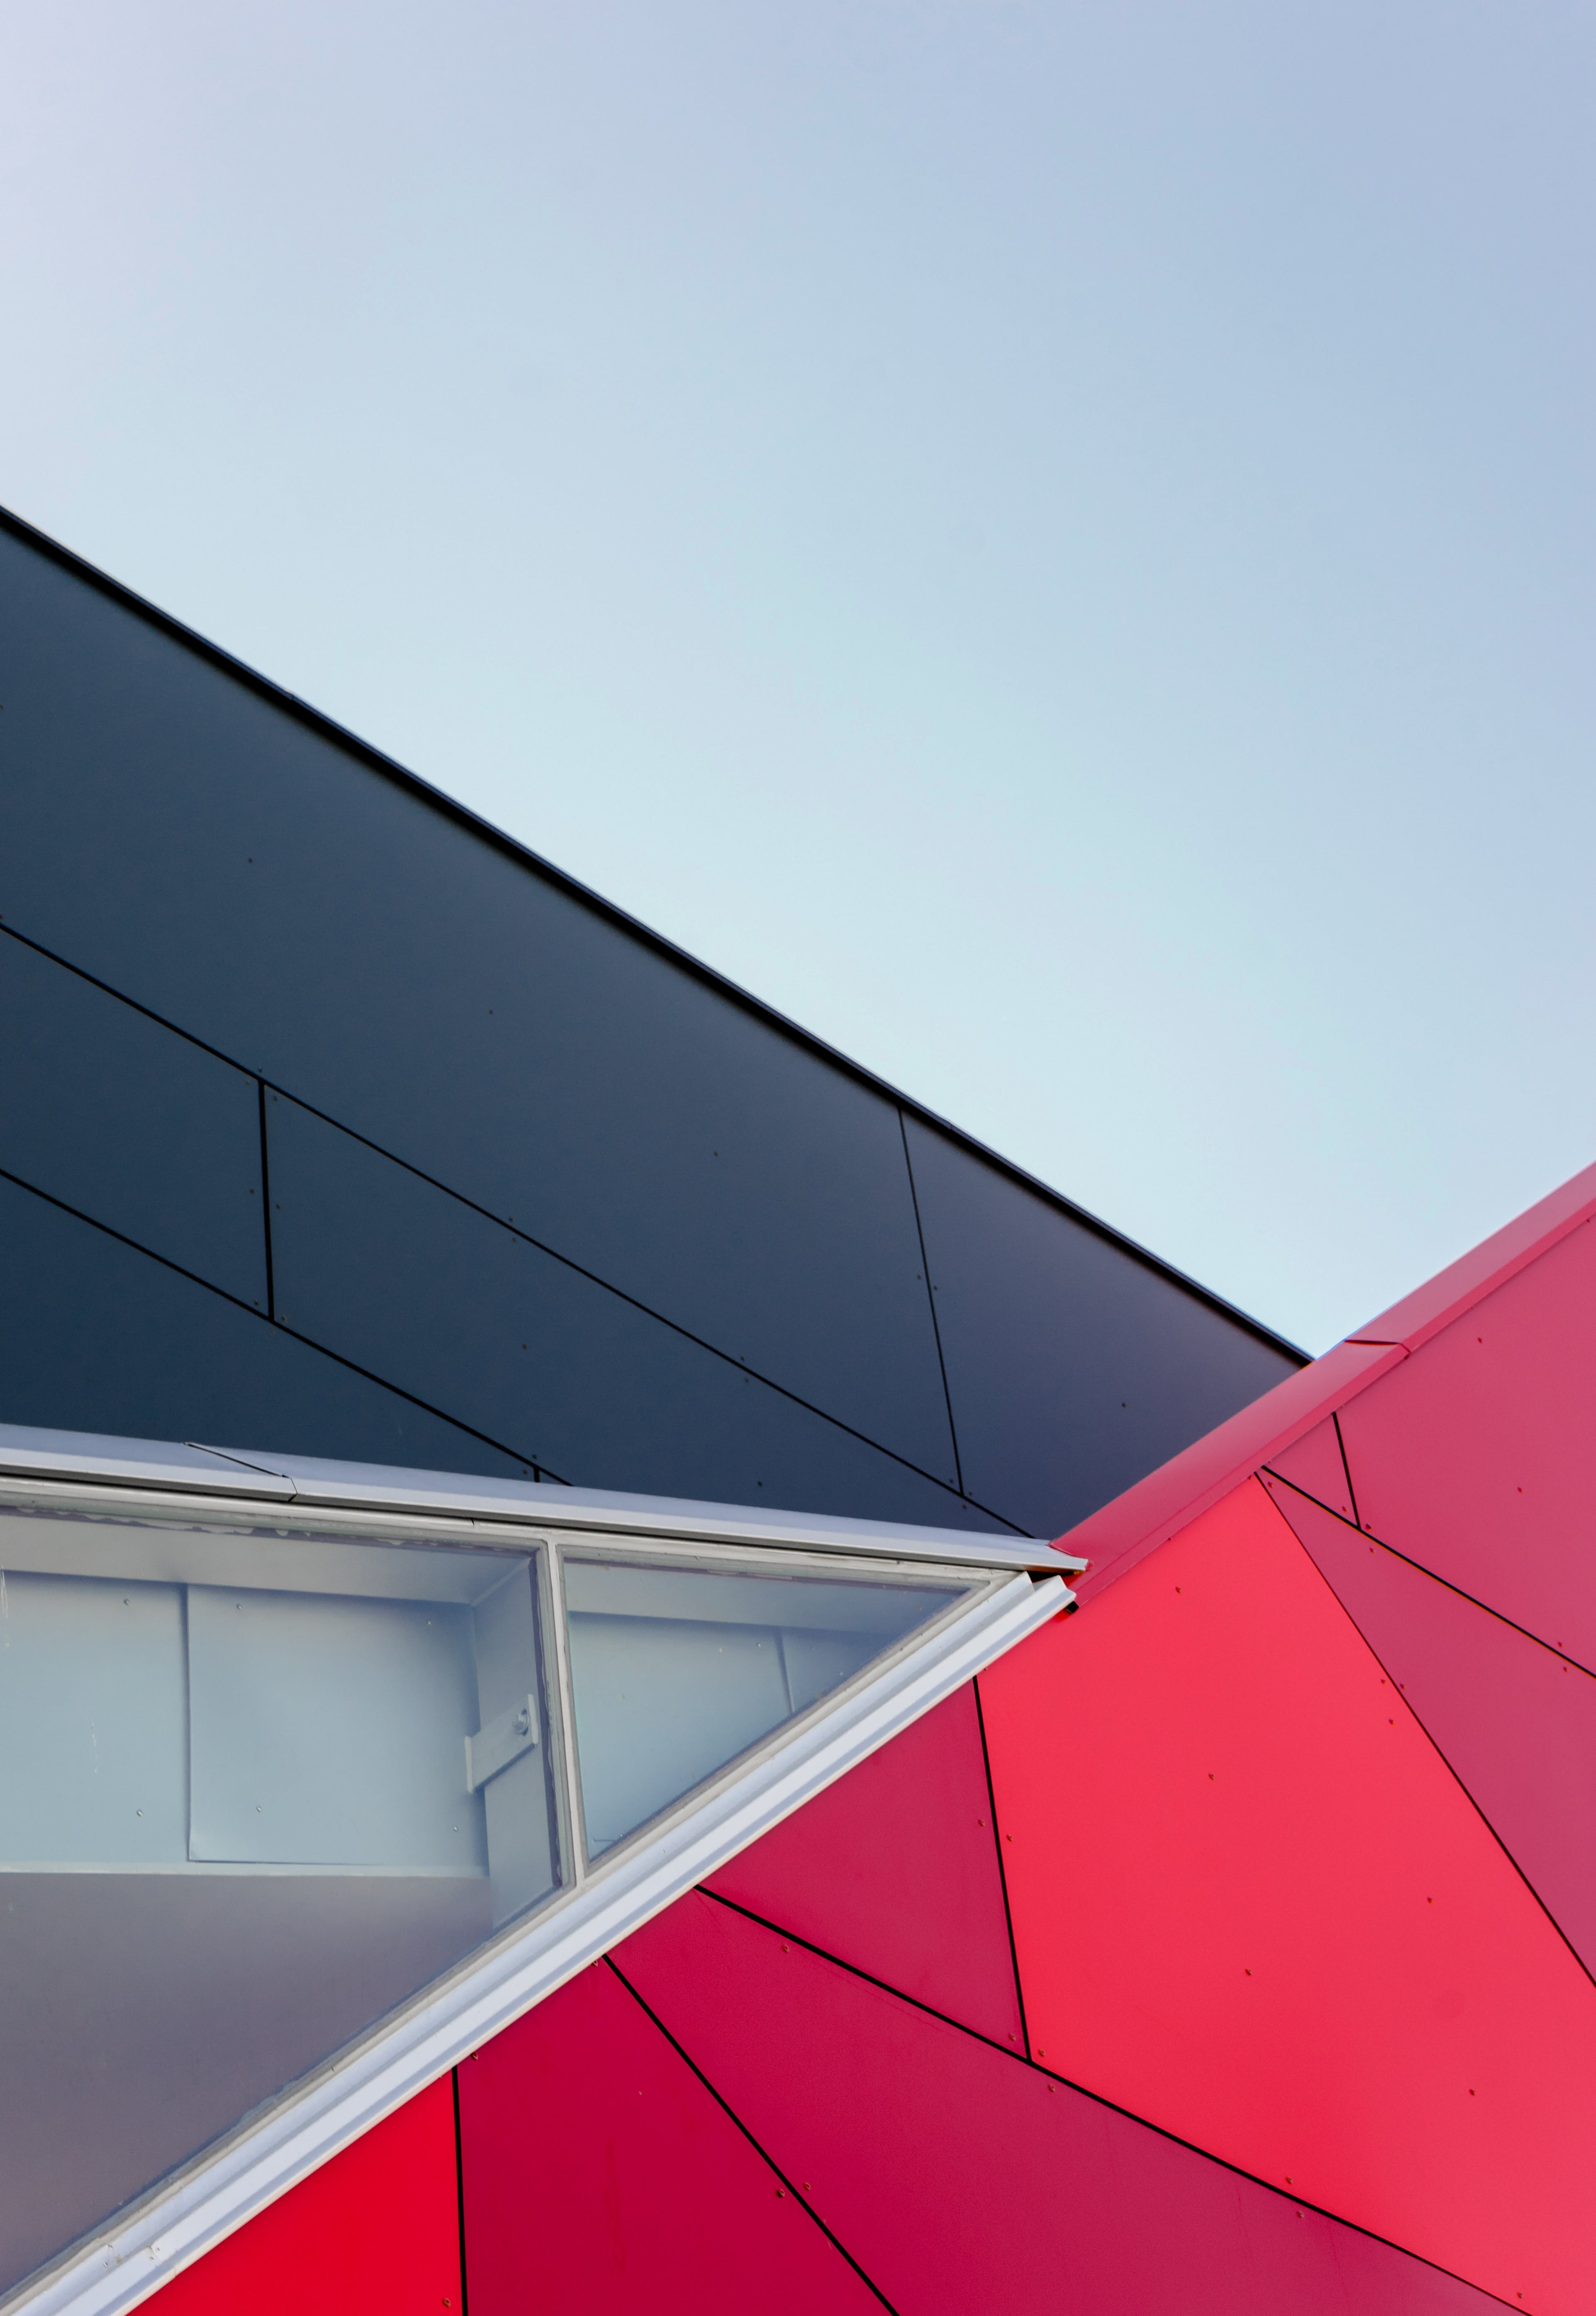 Architectural Photography of Roofings